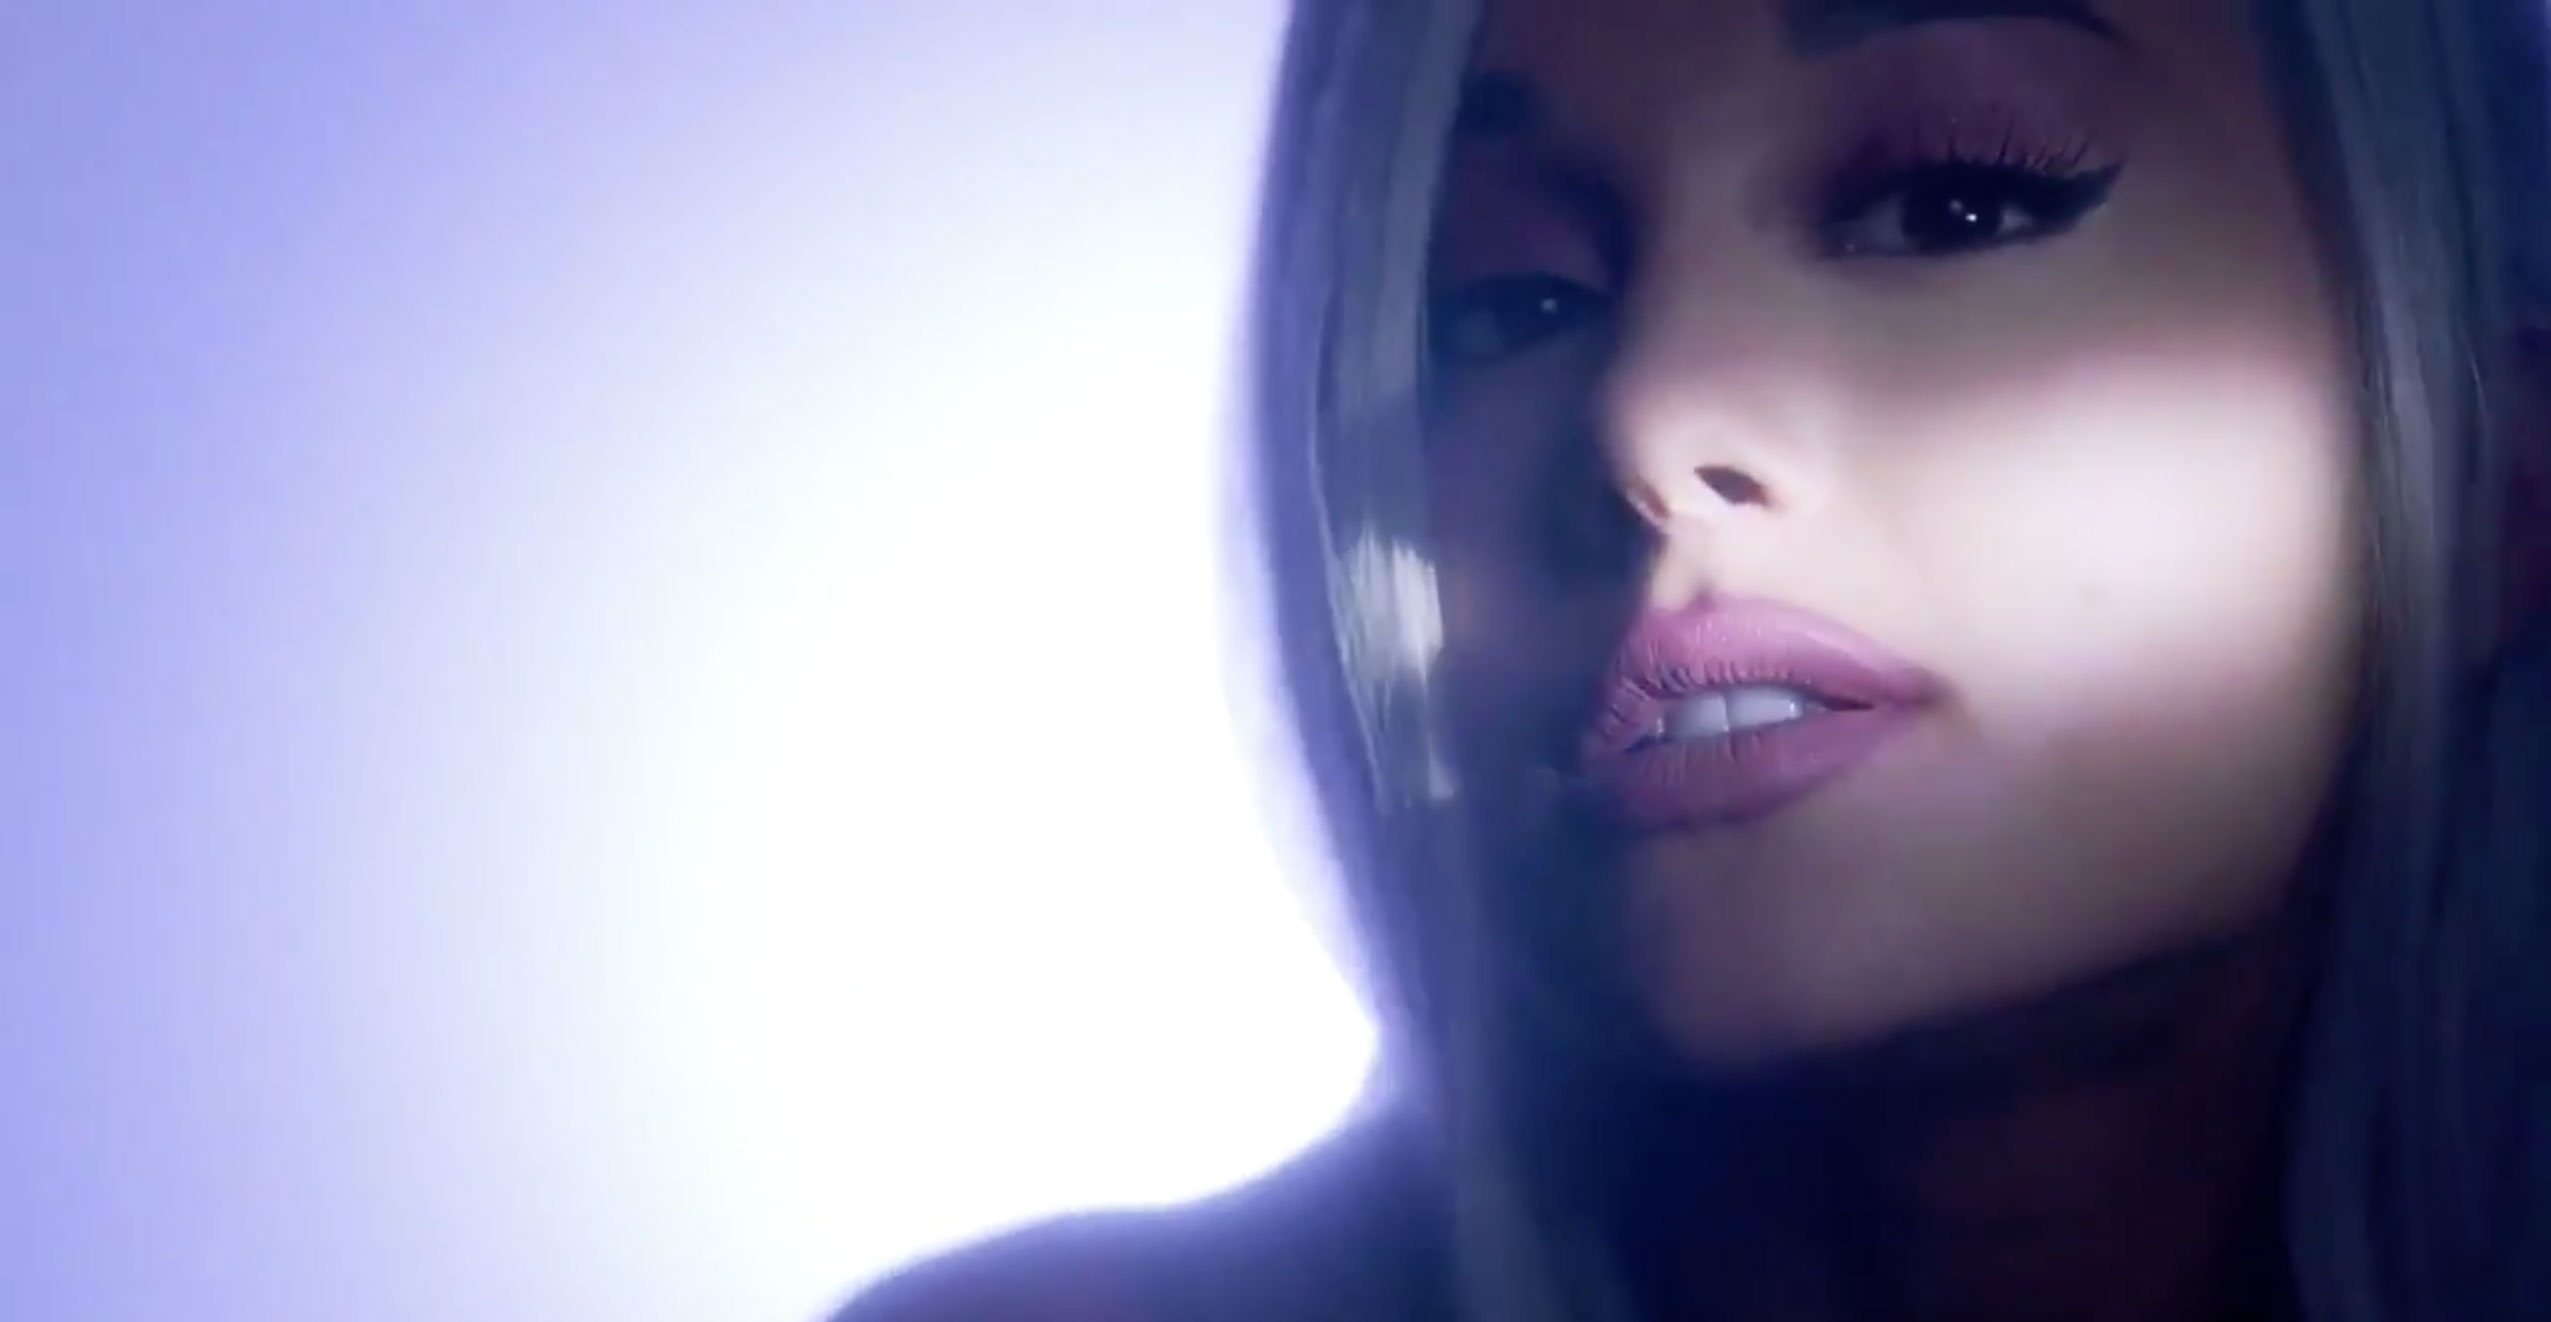 ariana grande teases the first song from her new album